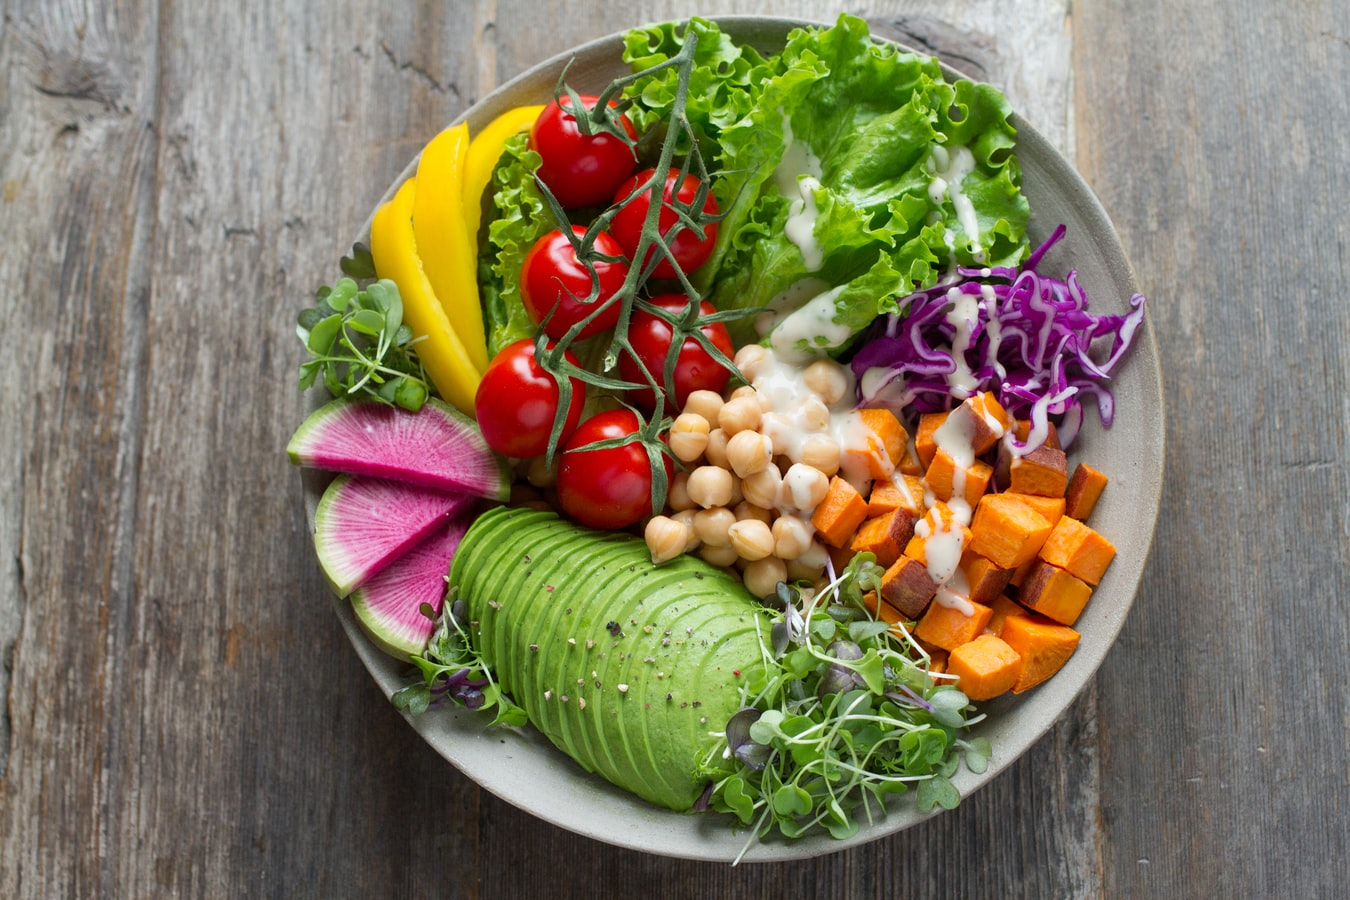 Is It Ever Too Late To Start Eating Healthy? A Senior's Guide To Healthy Eating